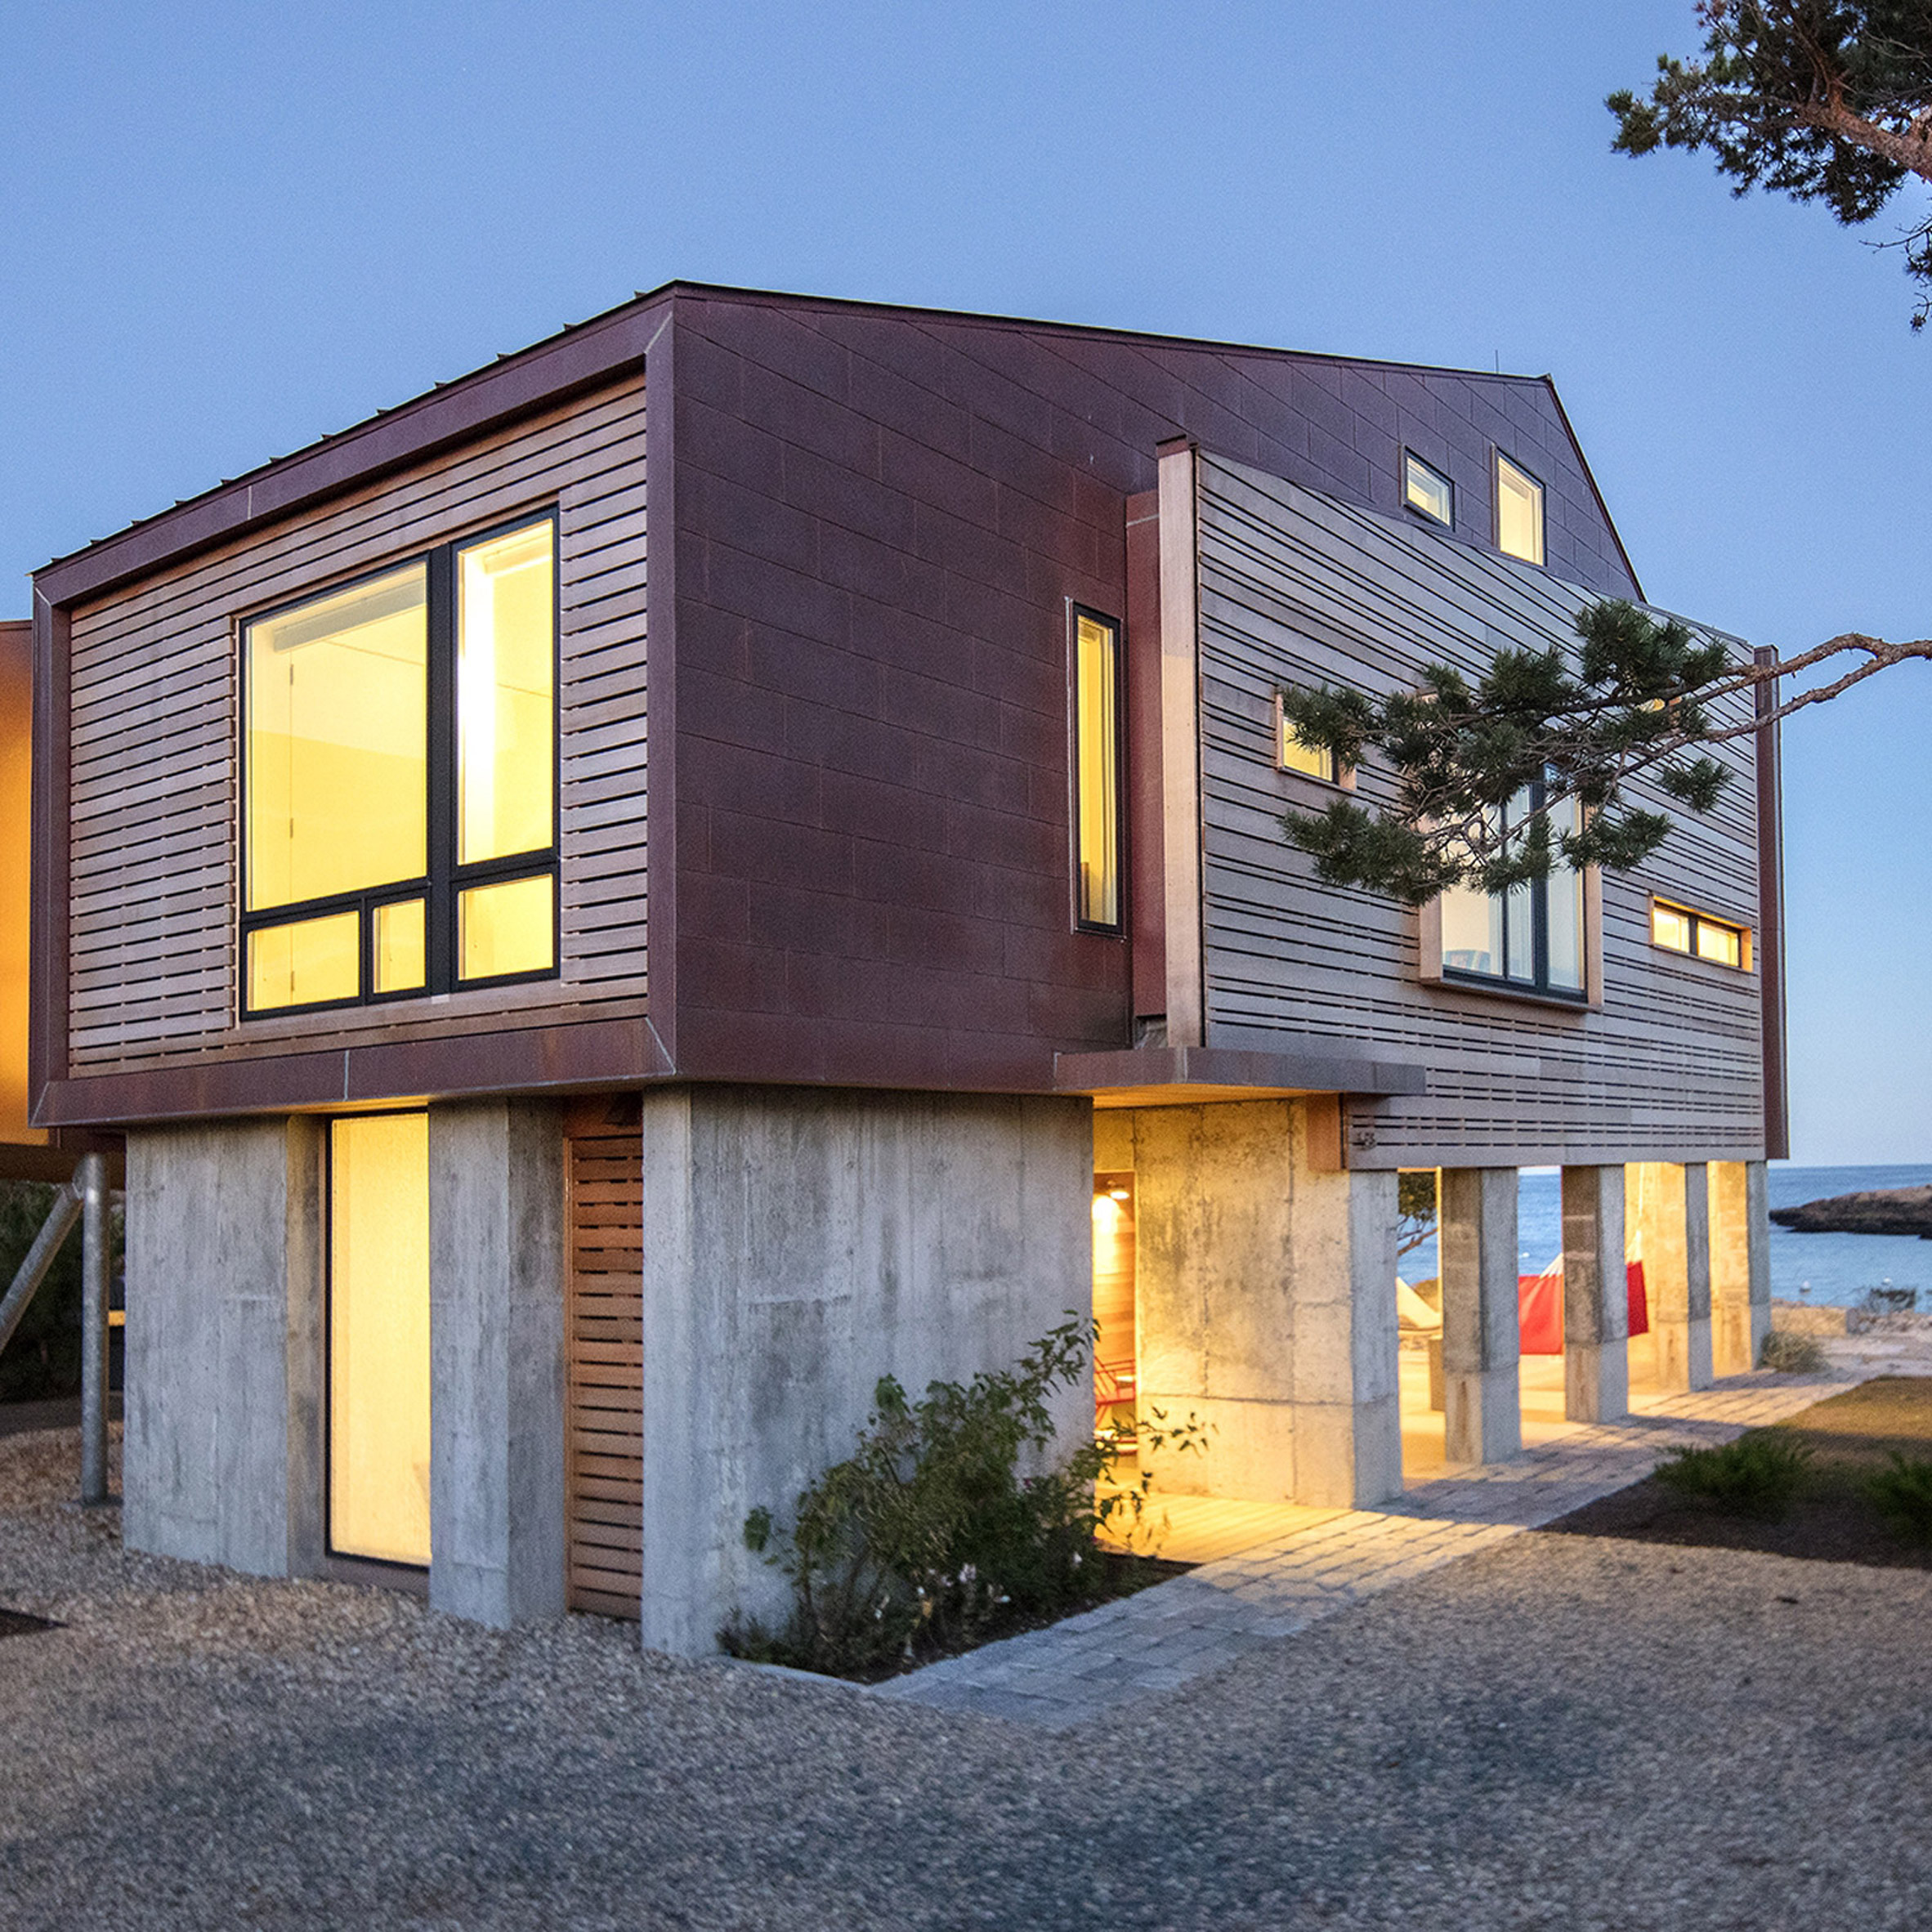 House design and architecture | Dezeen